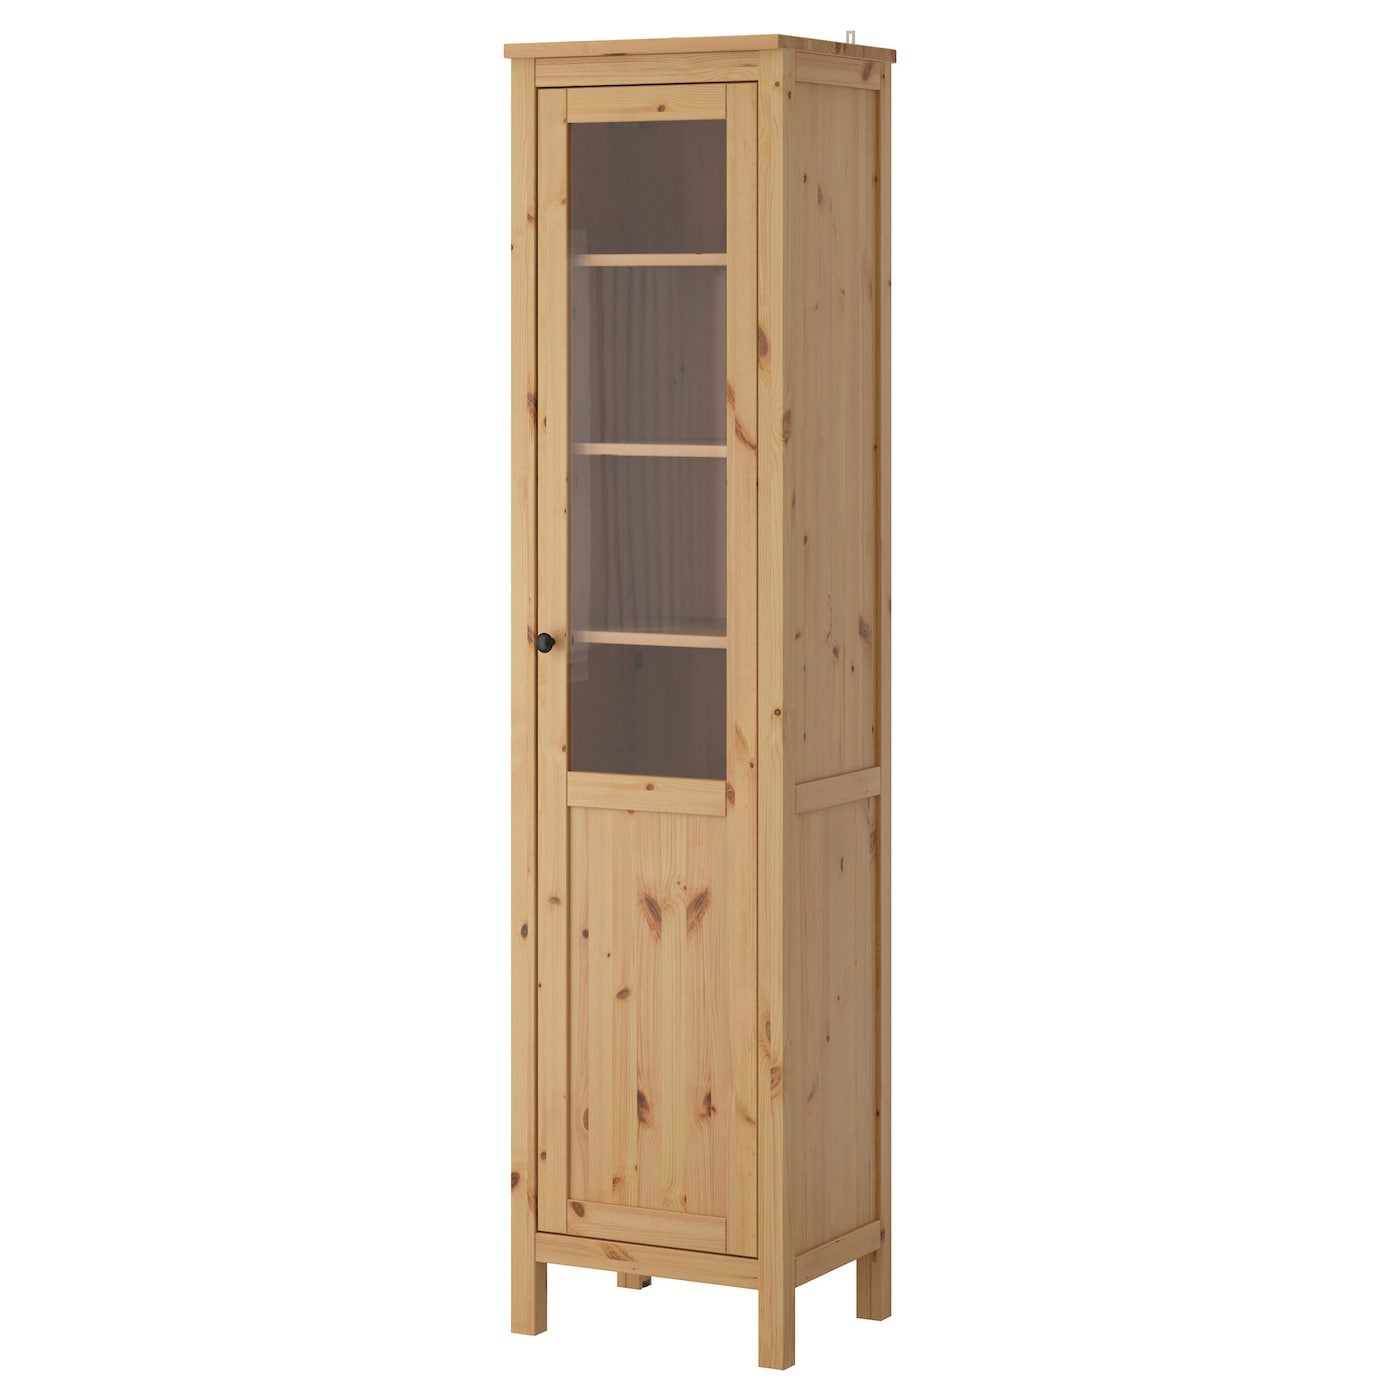 Hemnes cabinet with panel glass door light brown 49x197 cm for Bathroom cabinets 40cm wide